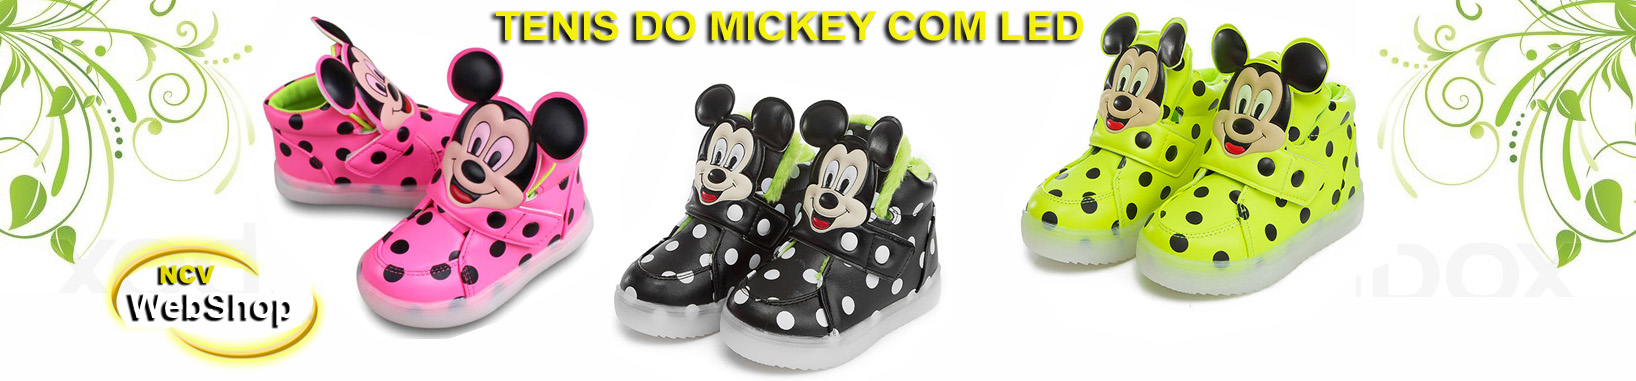 Tênis do mickey com luz de led - Tênis do mickey com led - Tênis do mickey com luz - Tênis do mickey com luzes